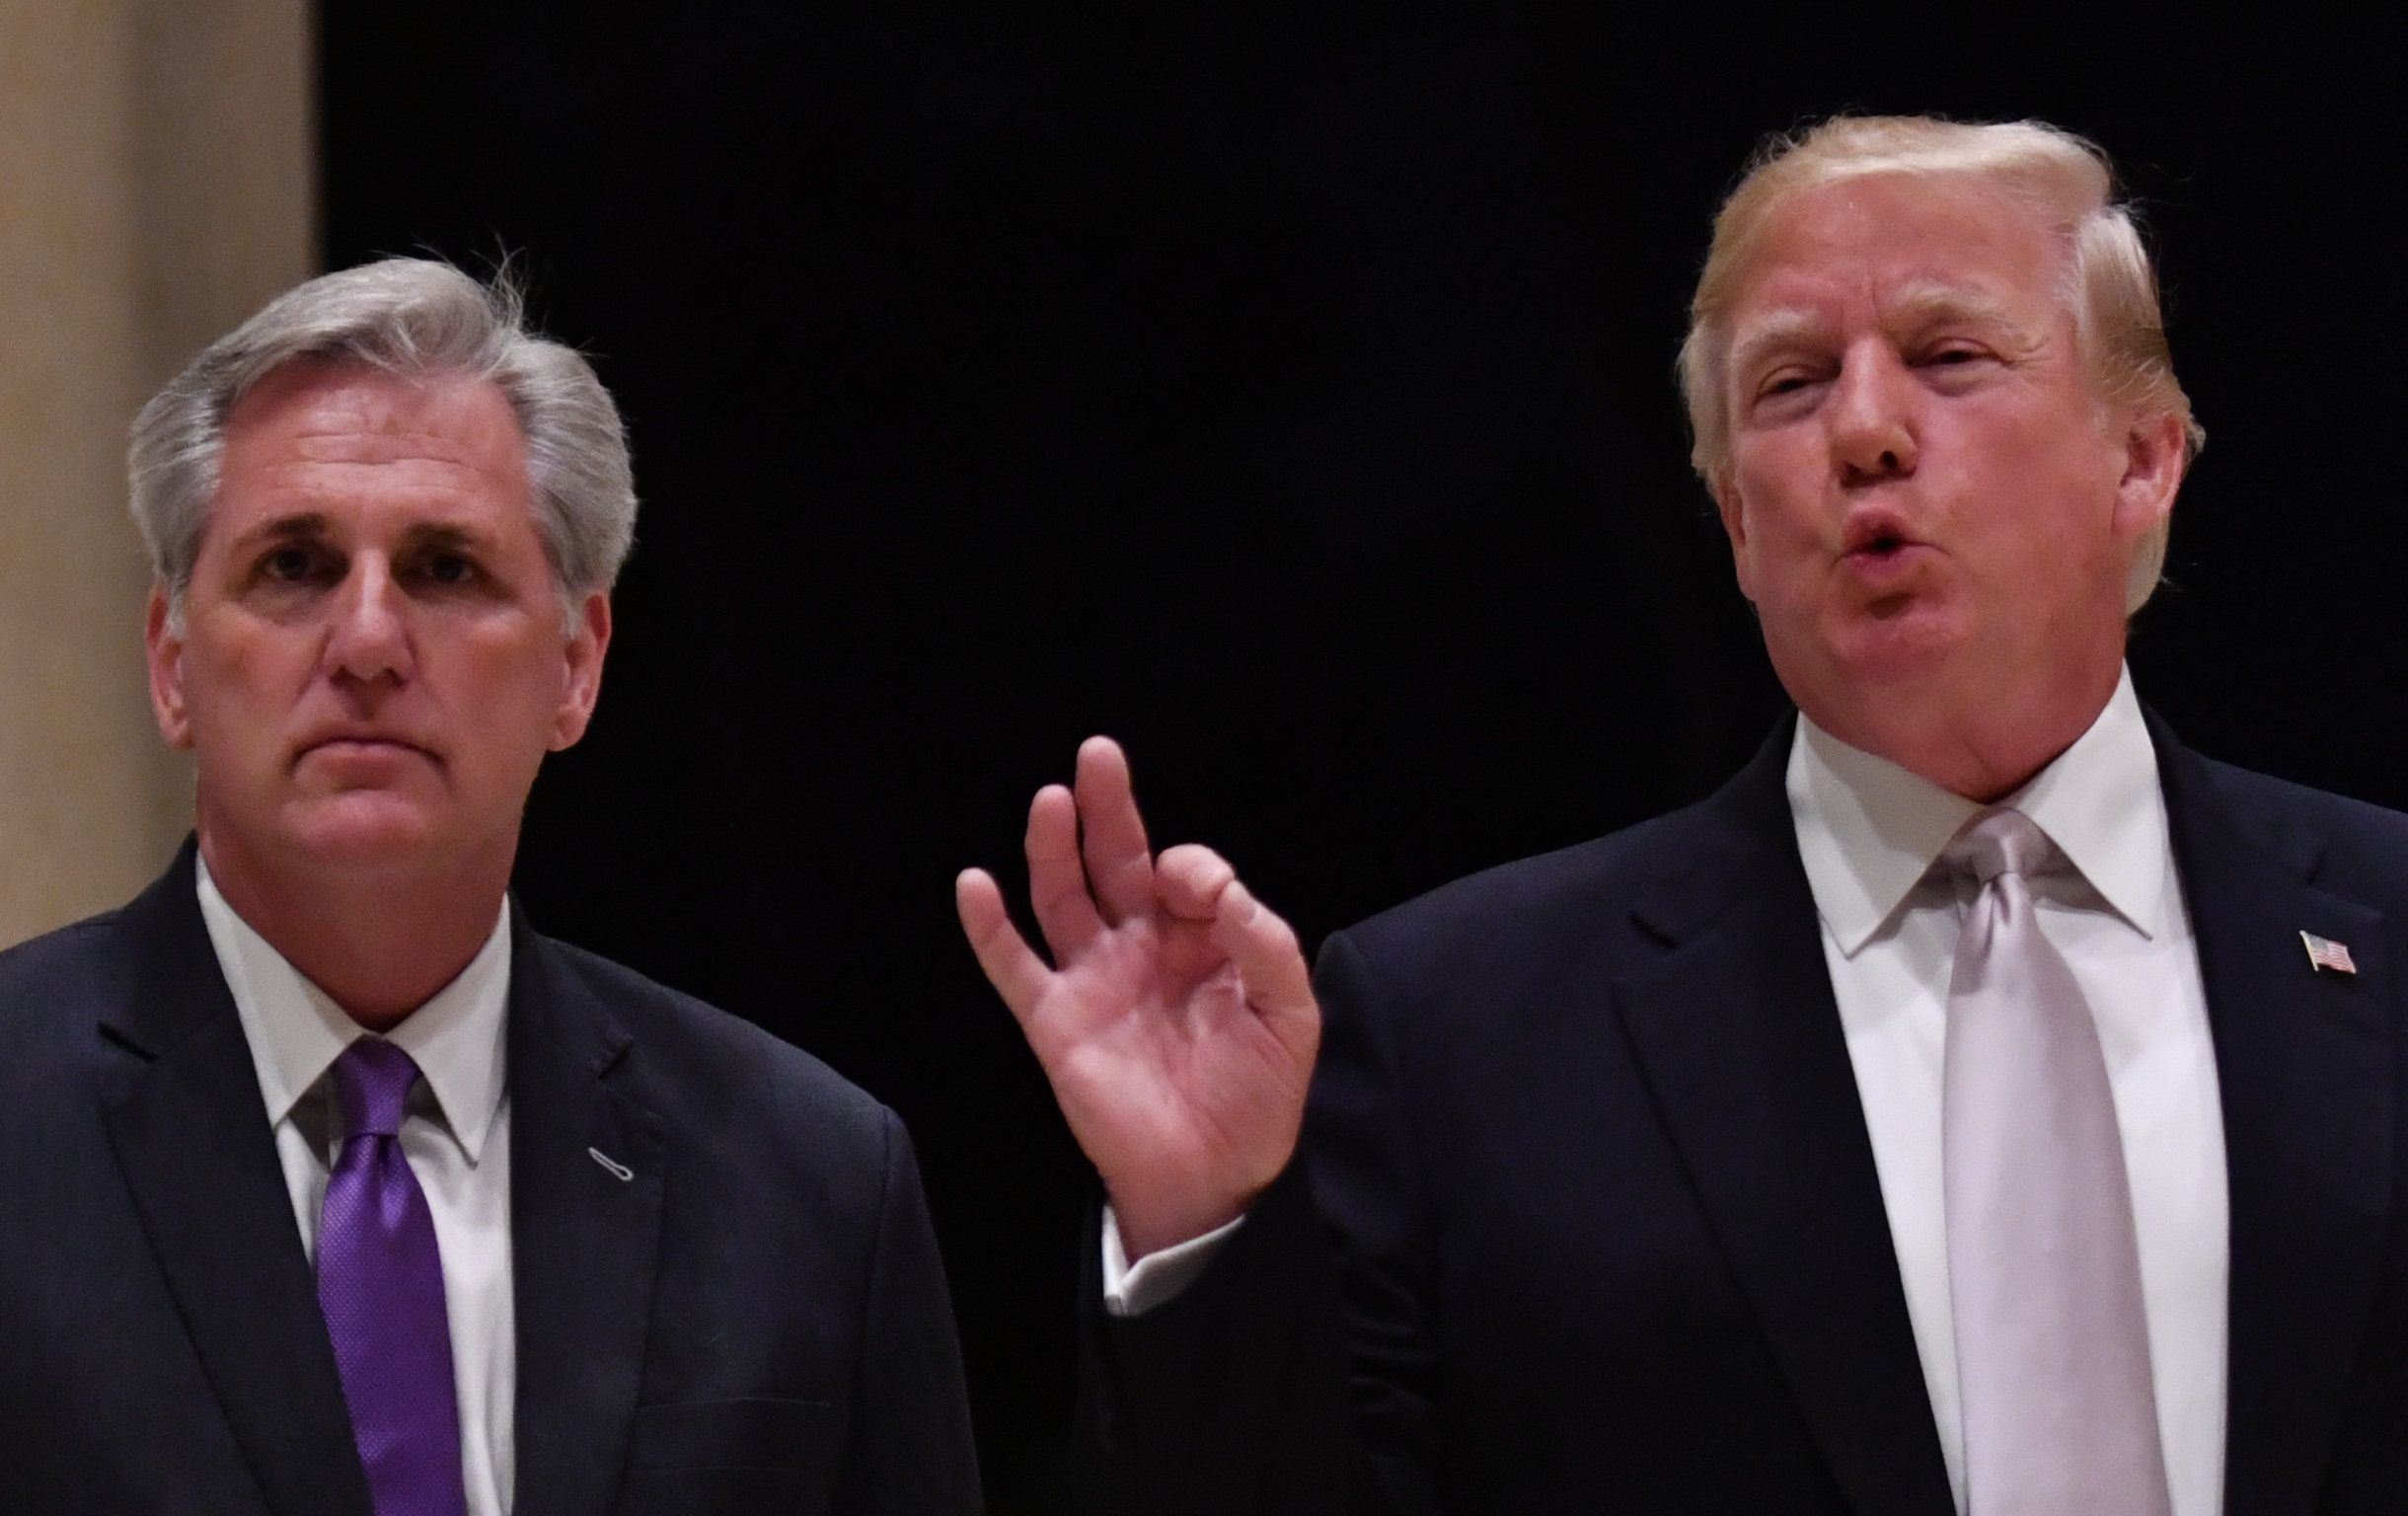 US President Donald Trump (R) speaks beside House Majority Leader Kevin McCarthy (L) at Trump International Golf Club in West Palm Beach on January 14, 2018.  / AFP PHOTO / Nicholas Kamm        (Photo credit should read NICHOLAS KAMM/AFP/Getty Images)